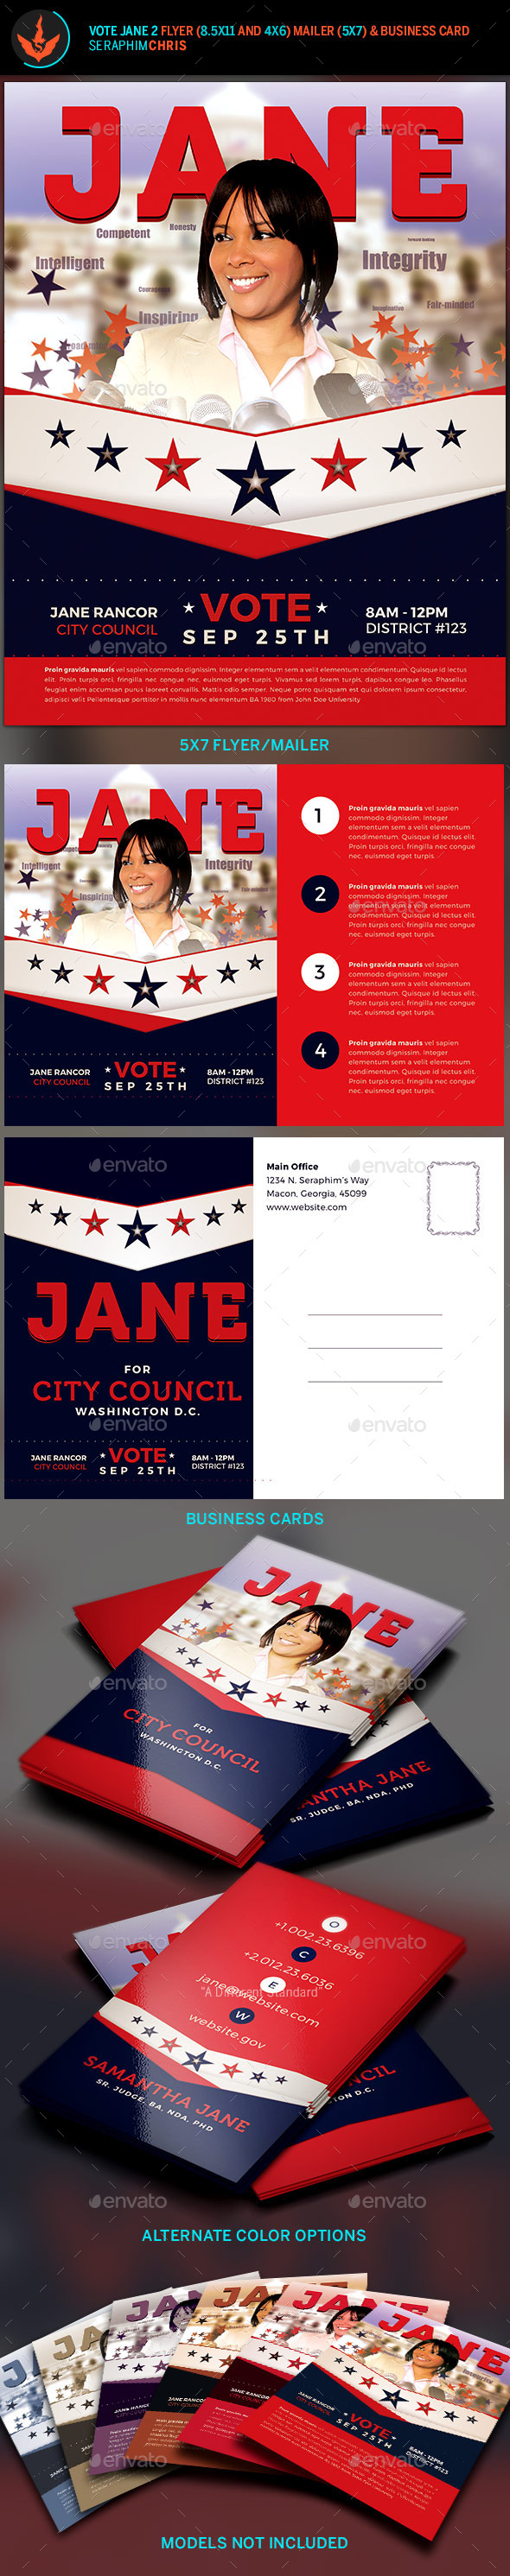 political business card graphics designs & templates